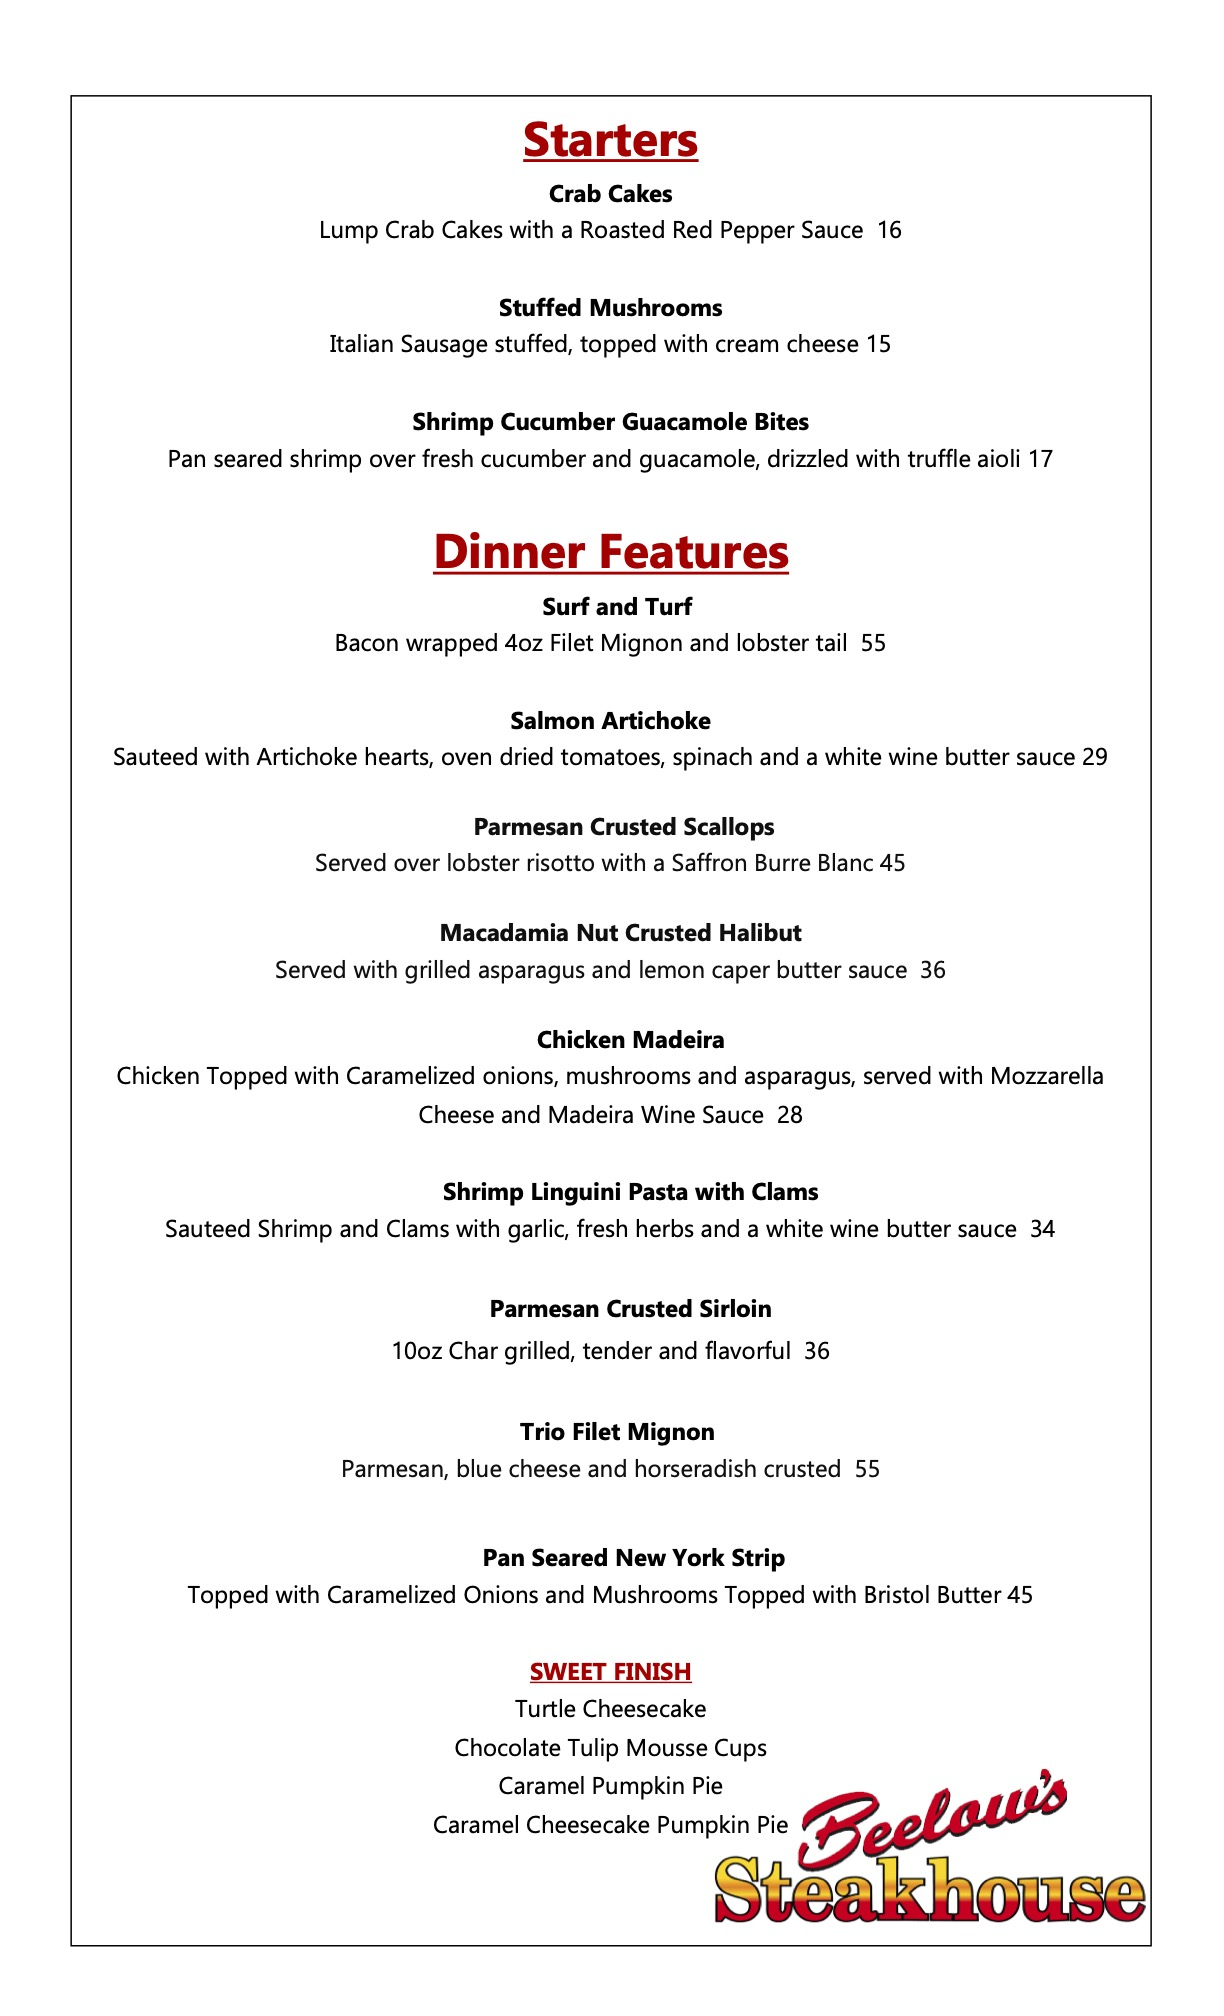 Dinner Features at Beelow's Steakhouse